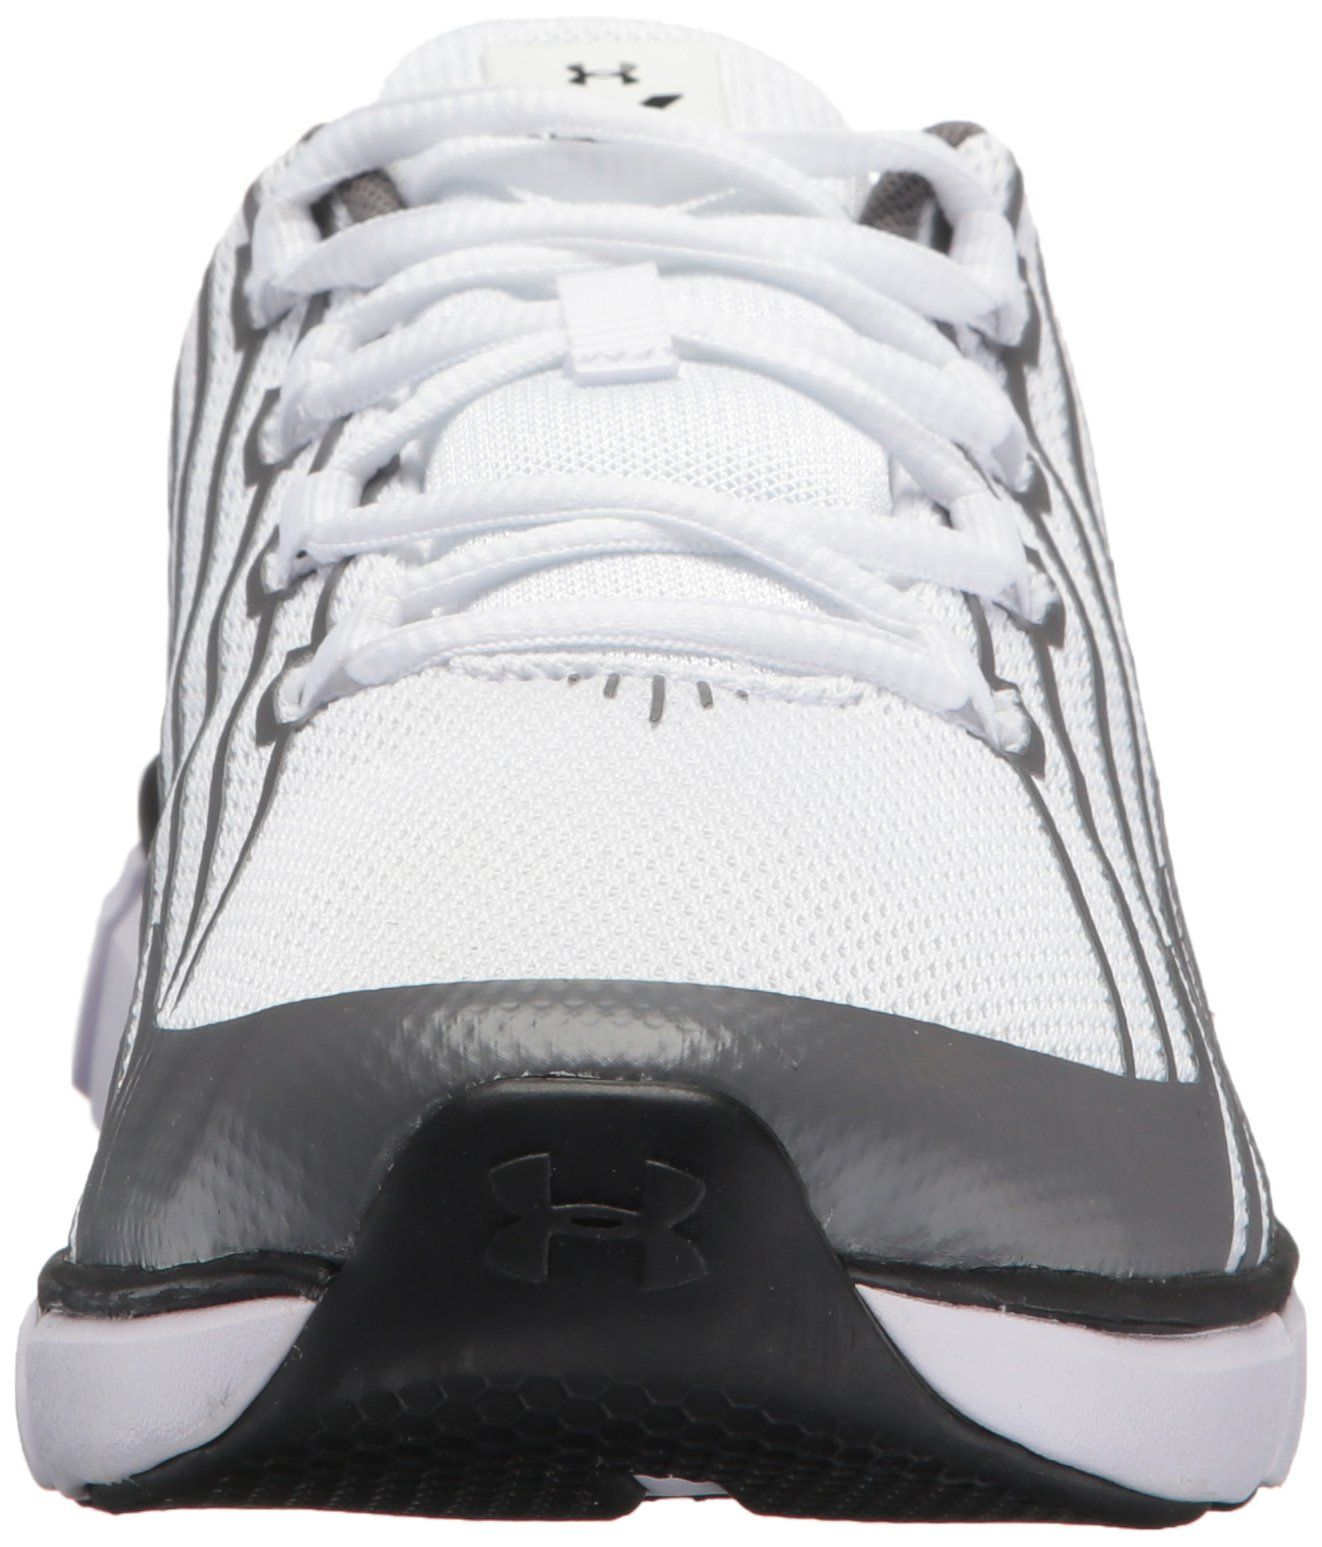 acceb94fda090 Under Armour Boys Grade School X Level Scramjet Remix Athletic Shoe White  102 Graphite 4 -- Find out more about the great product at the image ...